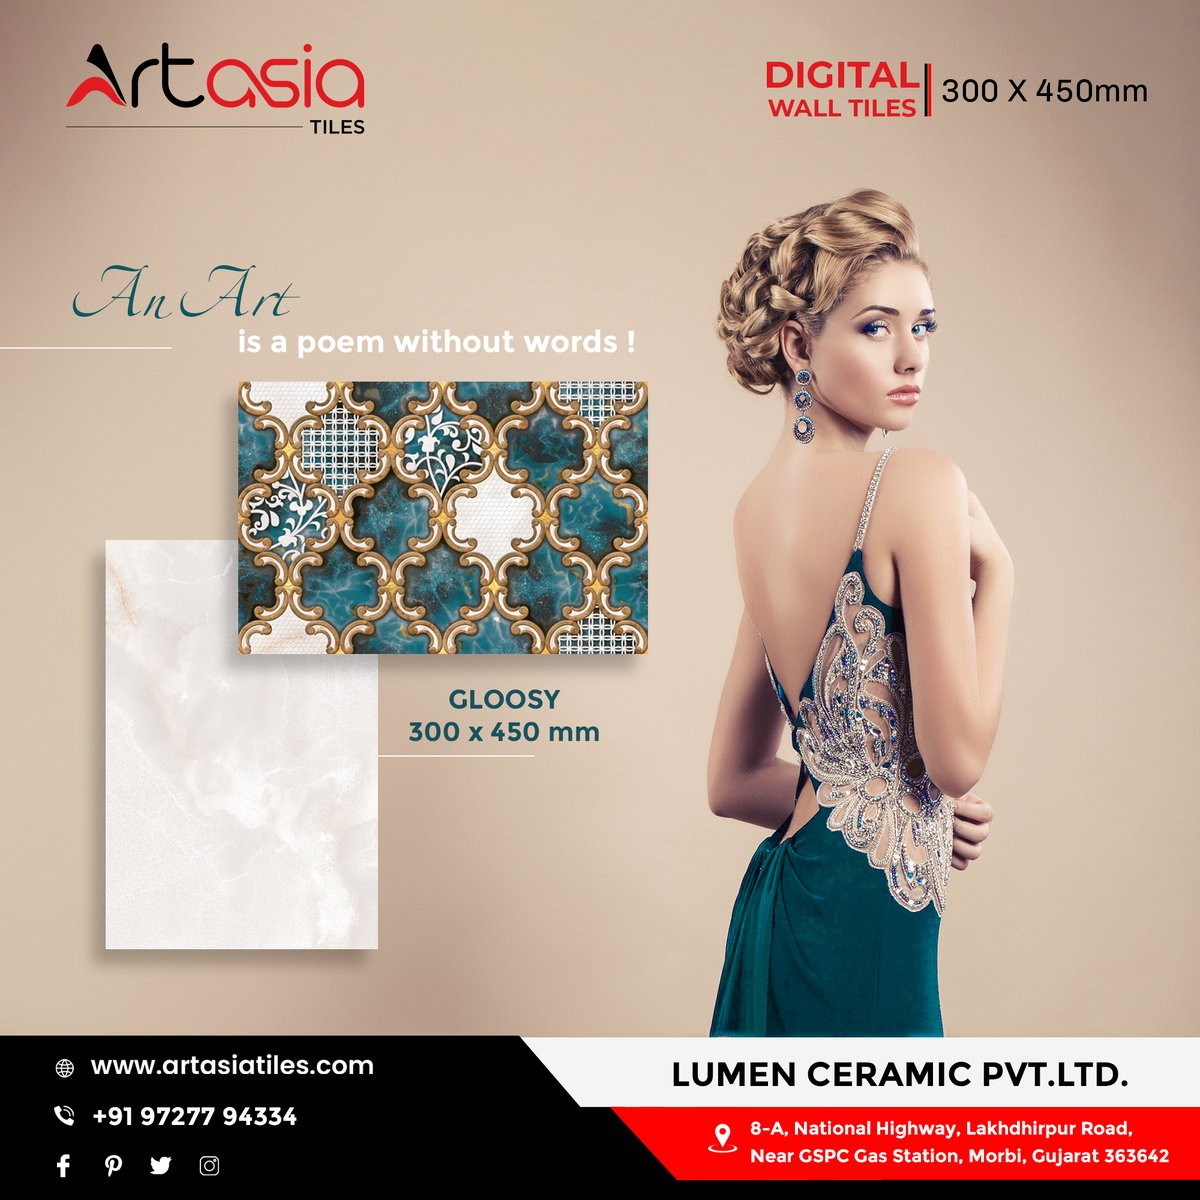 """""""An Art is a poem without words !""""  300x450mm   Glossy   Digital Wall Tiles #artasiatiles #300x450mm #livedesign #Artasia #digitalwalltiles #tiles #ceramictiles #ceramic #interiourdesign #interiourhome #morbitiles #exports #tileexport #bestqualityproducts  #morbi #gujarat #indiapic.twitter.com/vuJ488bYK1"""